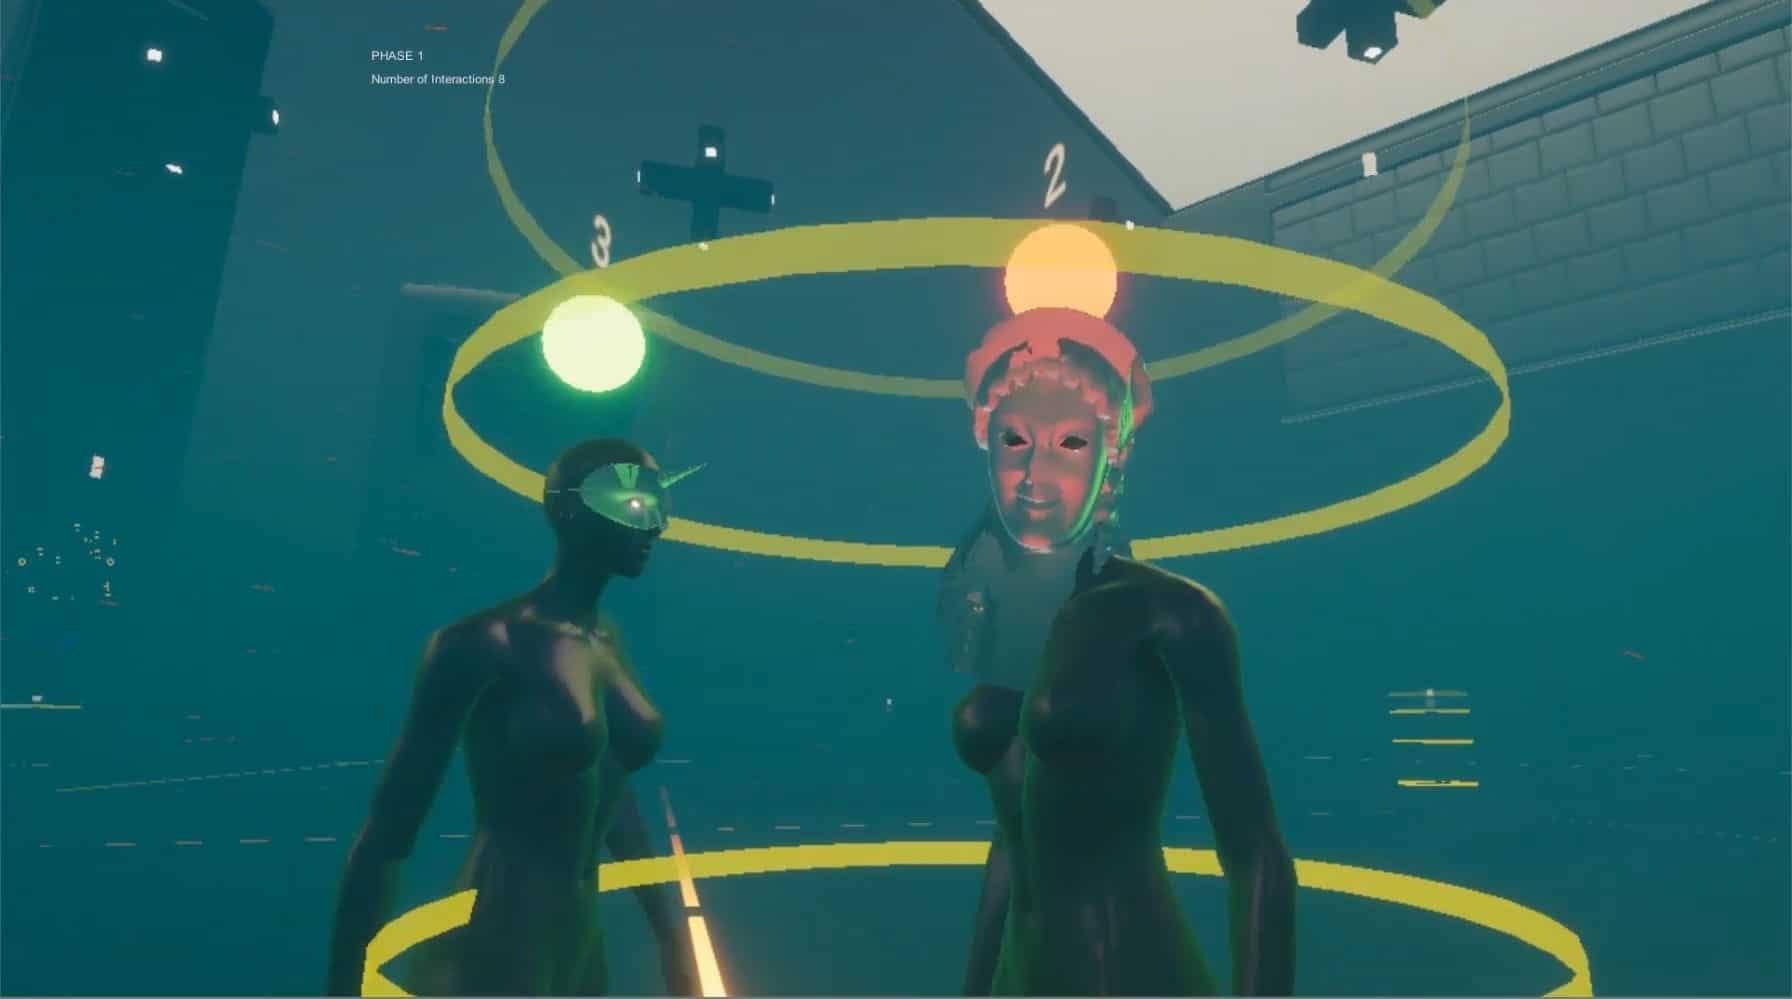 Resonant Realities | VR Art Award of DKB in Co-Operation with CAA Berlin